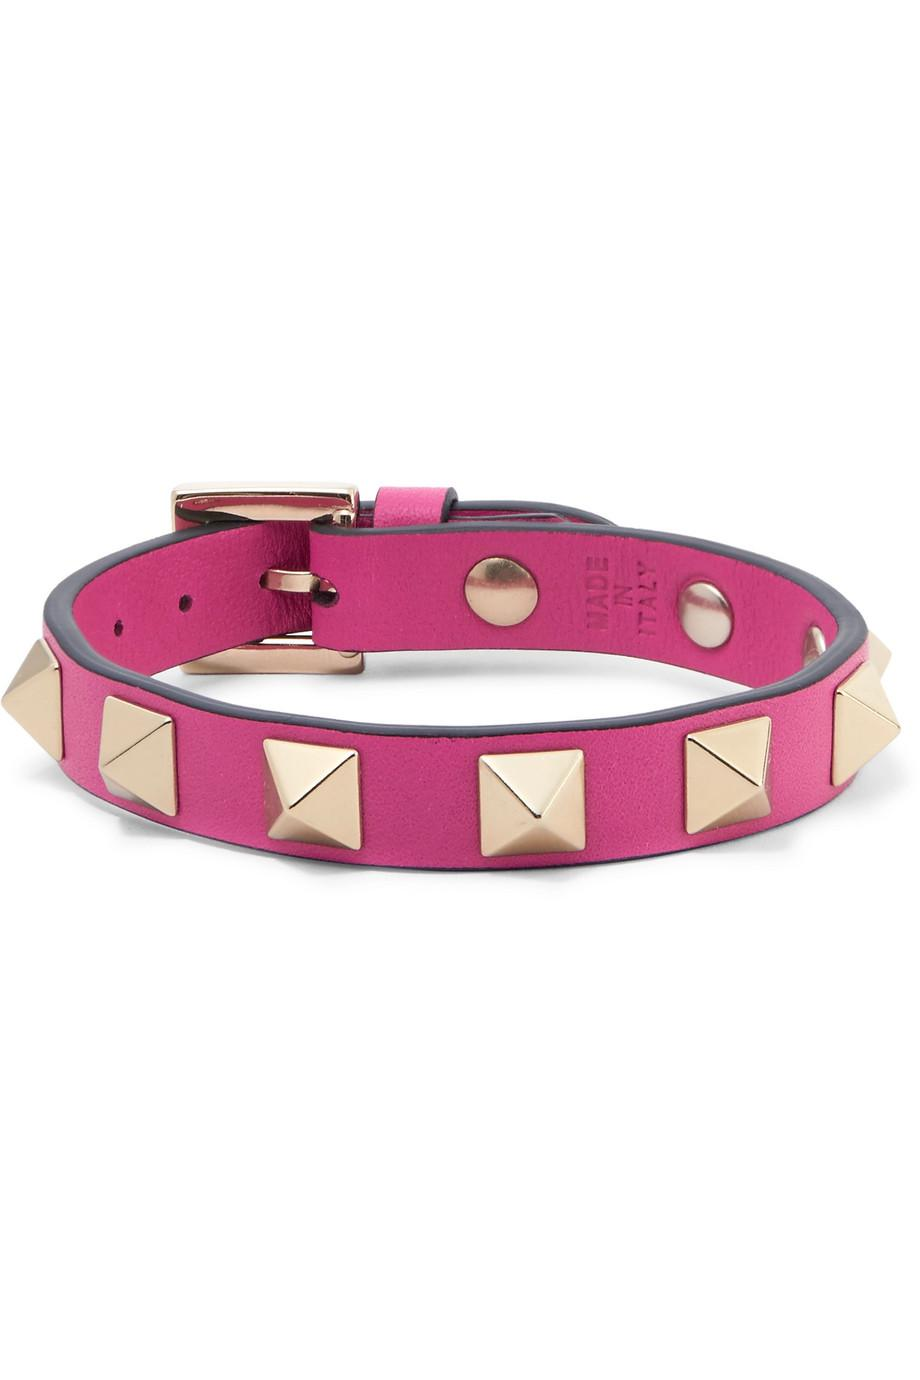 Valentino Garavani The Rockstud Leather And Gold-tone Bracelet - Pastel pink Valentino app1p